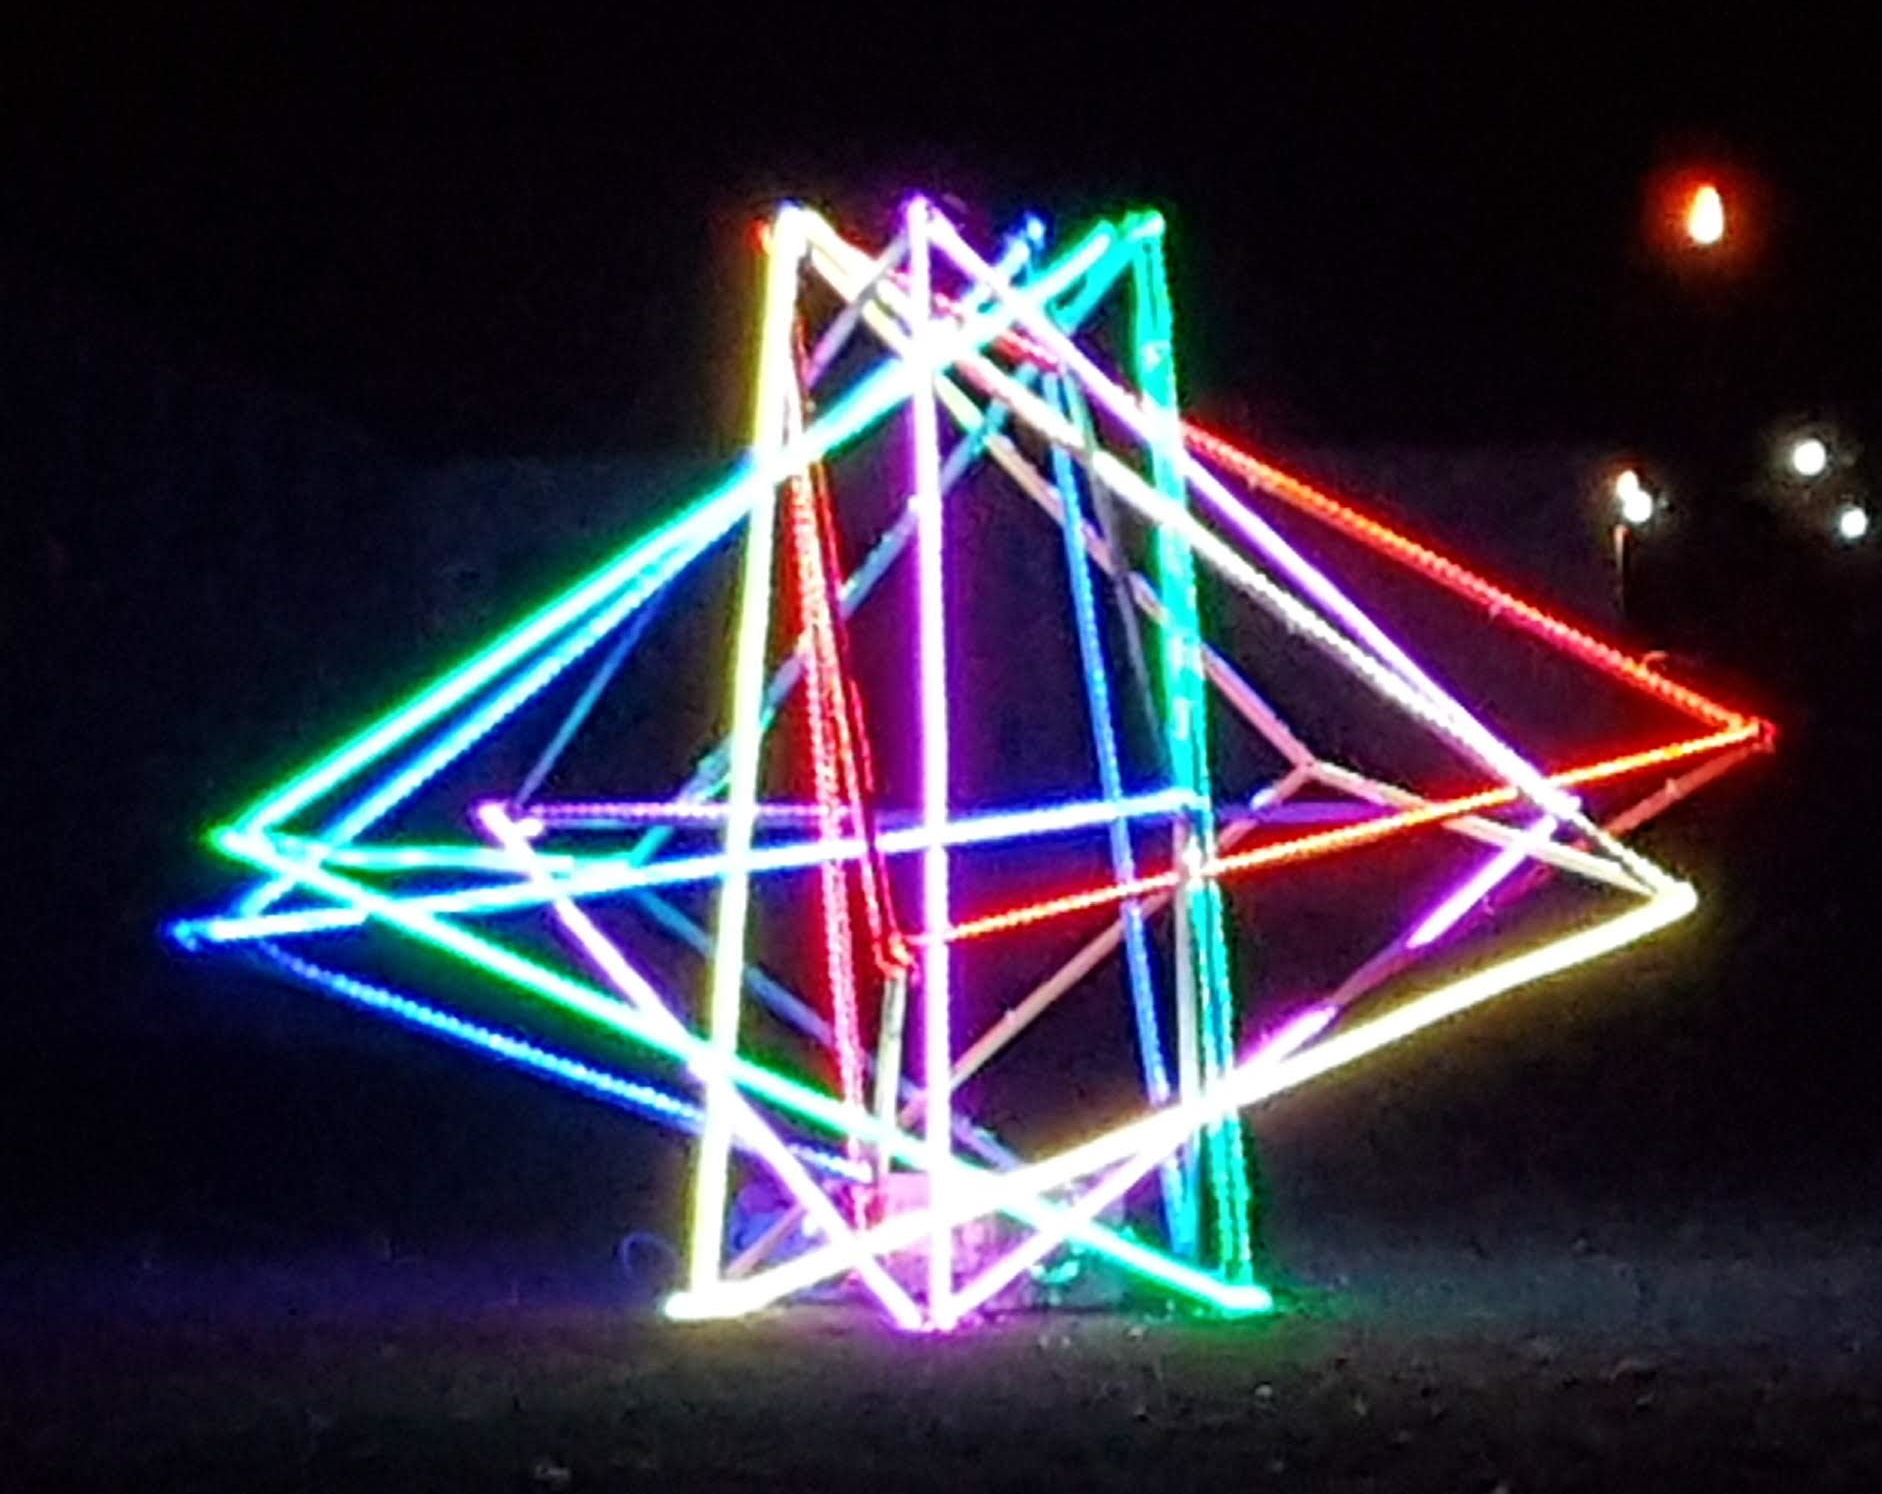 Five intersecting tetrahedra lit up at night